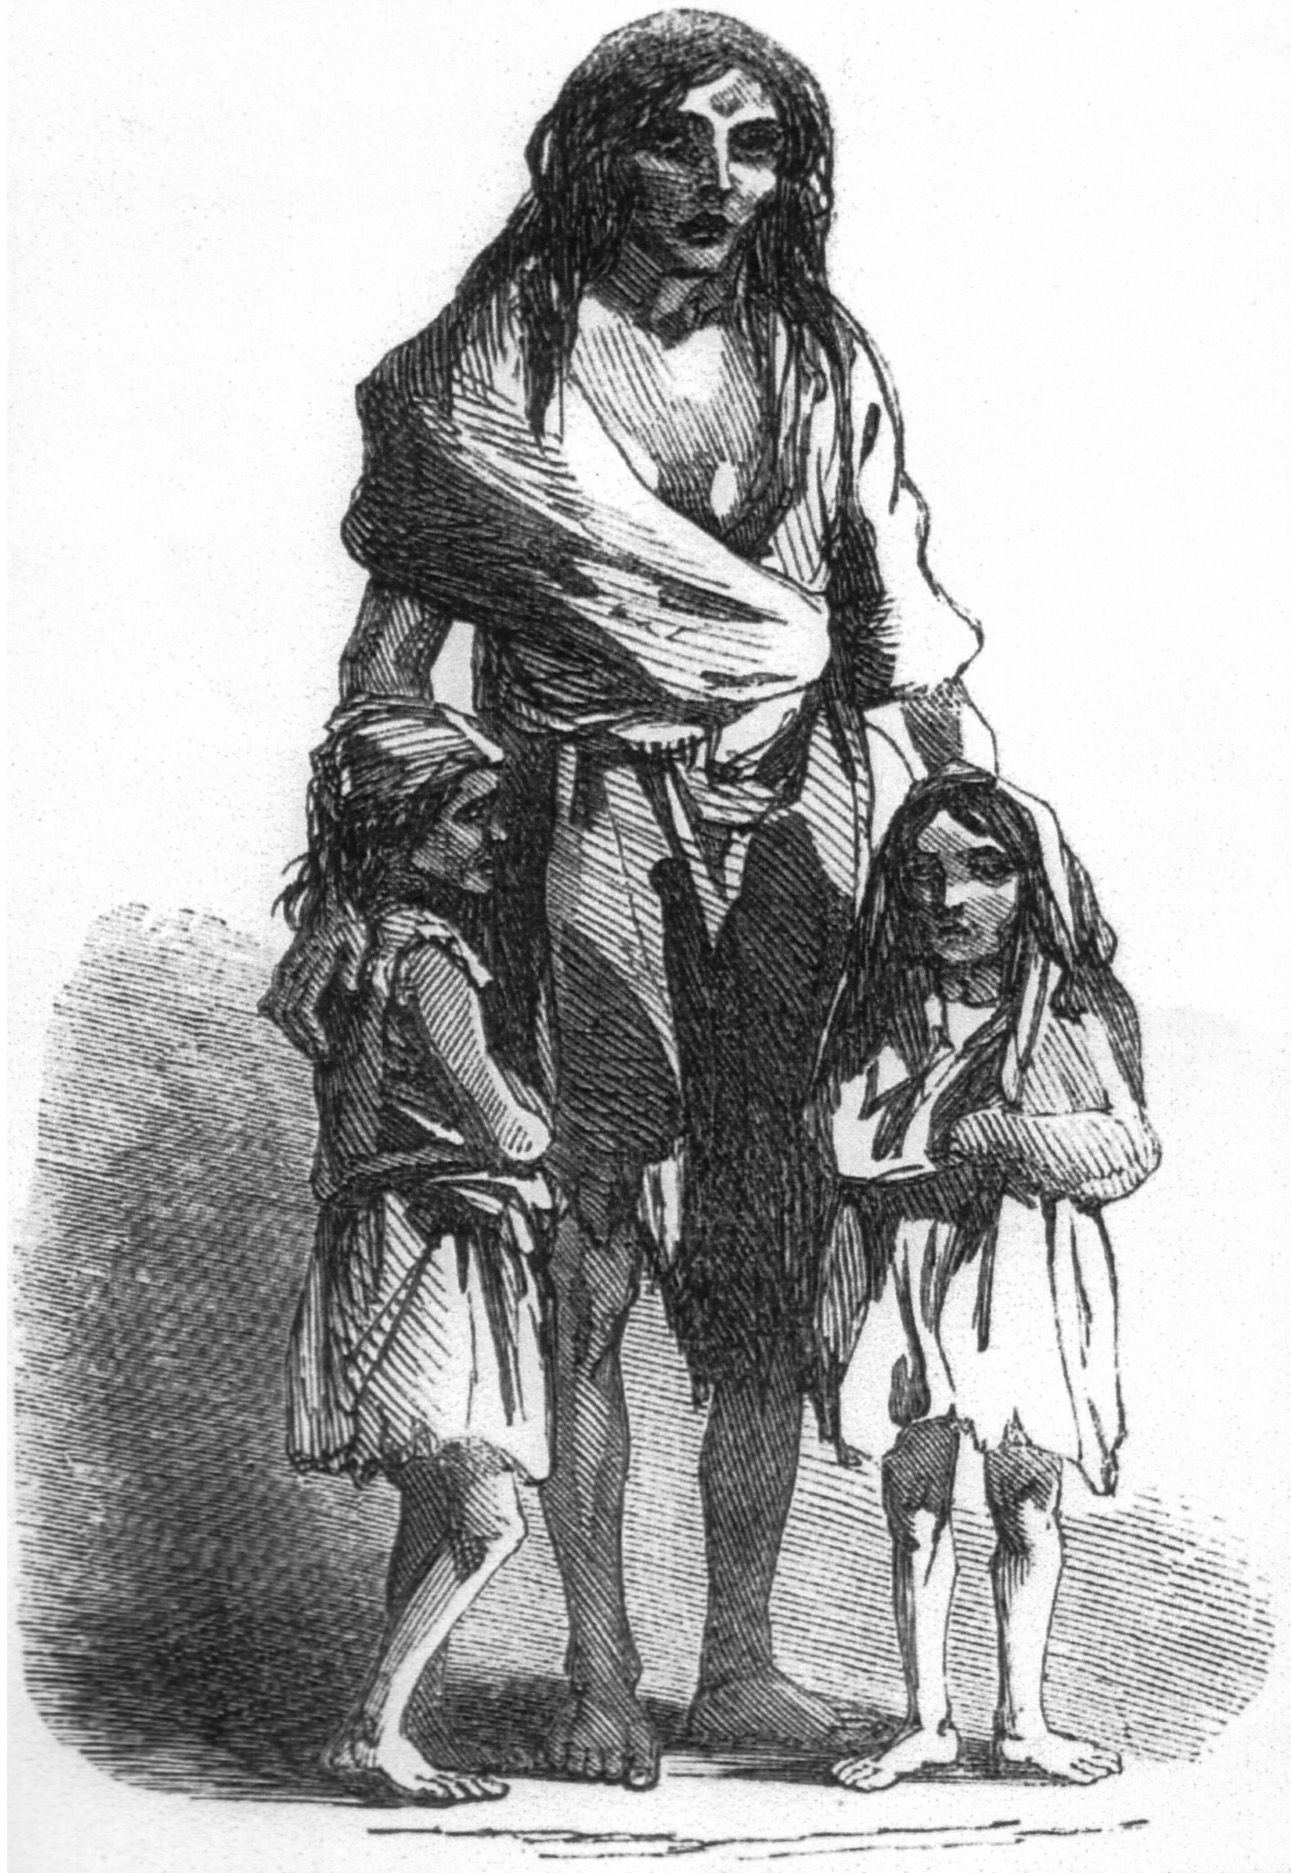 a history of the irish potato famine during the middle of nineteenth century Buy the great famine: the history of the irish potato famine during the mid-19th  century on amazoncom ✓ free shipping on qualified orders.